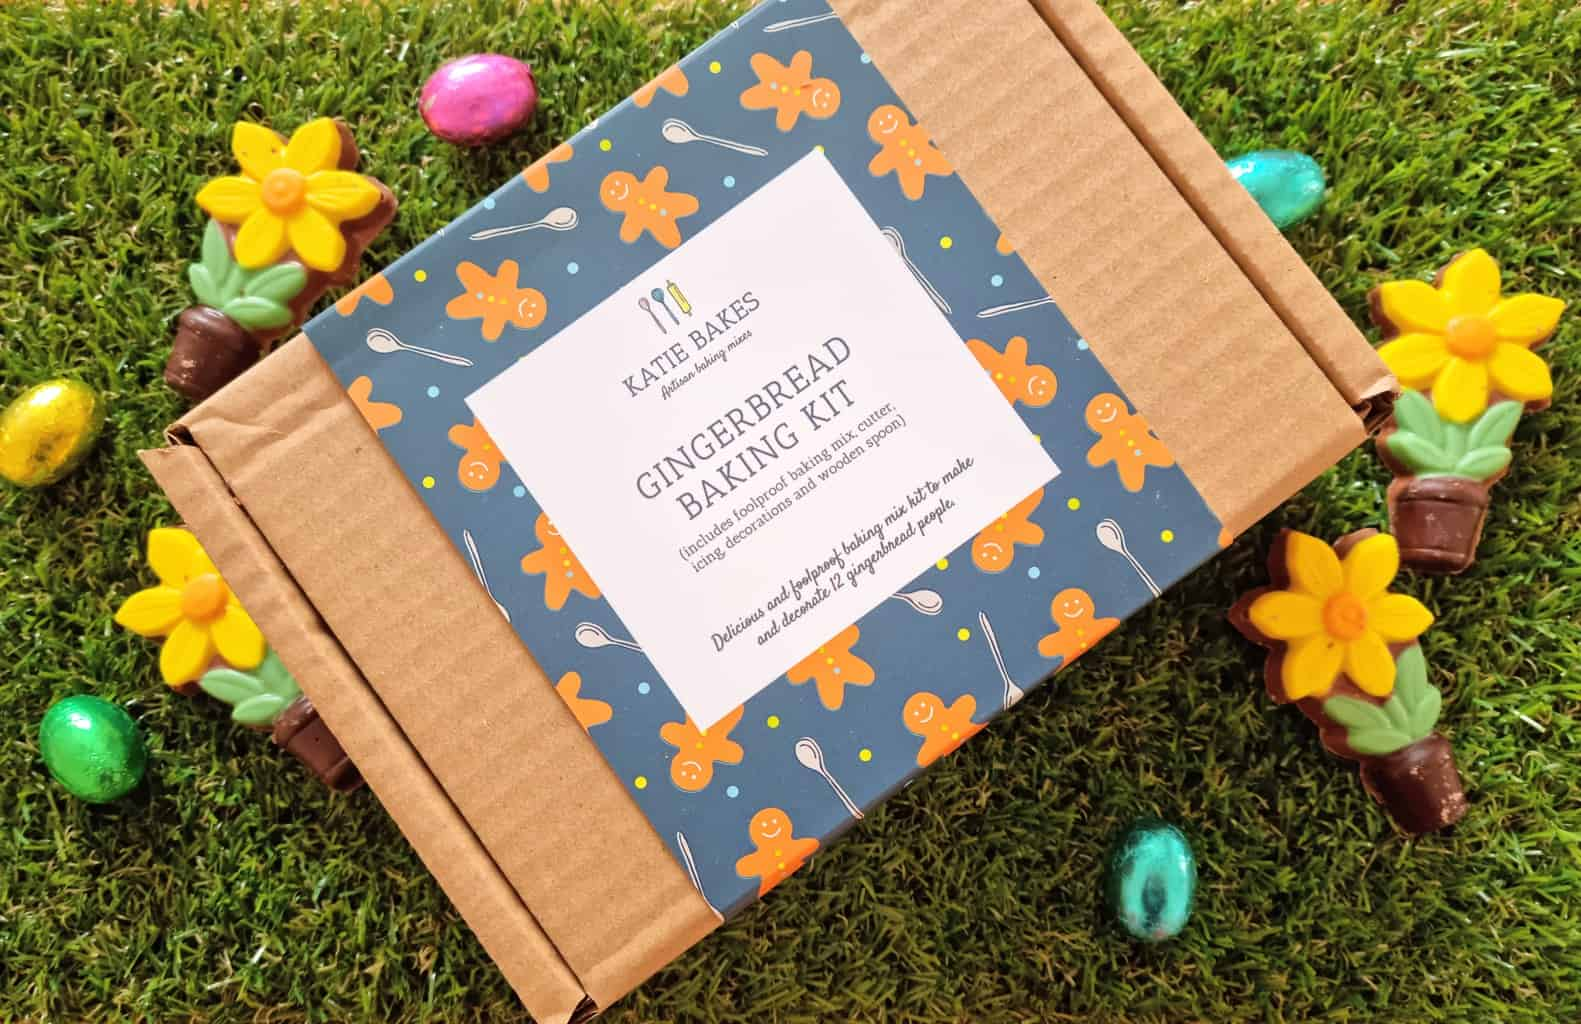 Easter Goods and Fine Foods Online at Pantry House